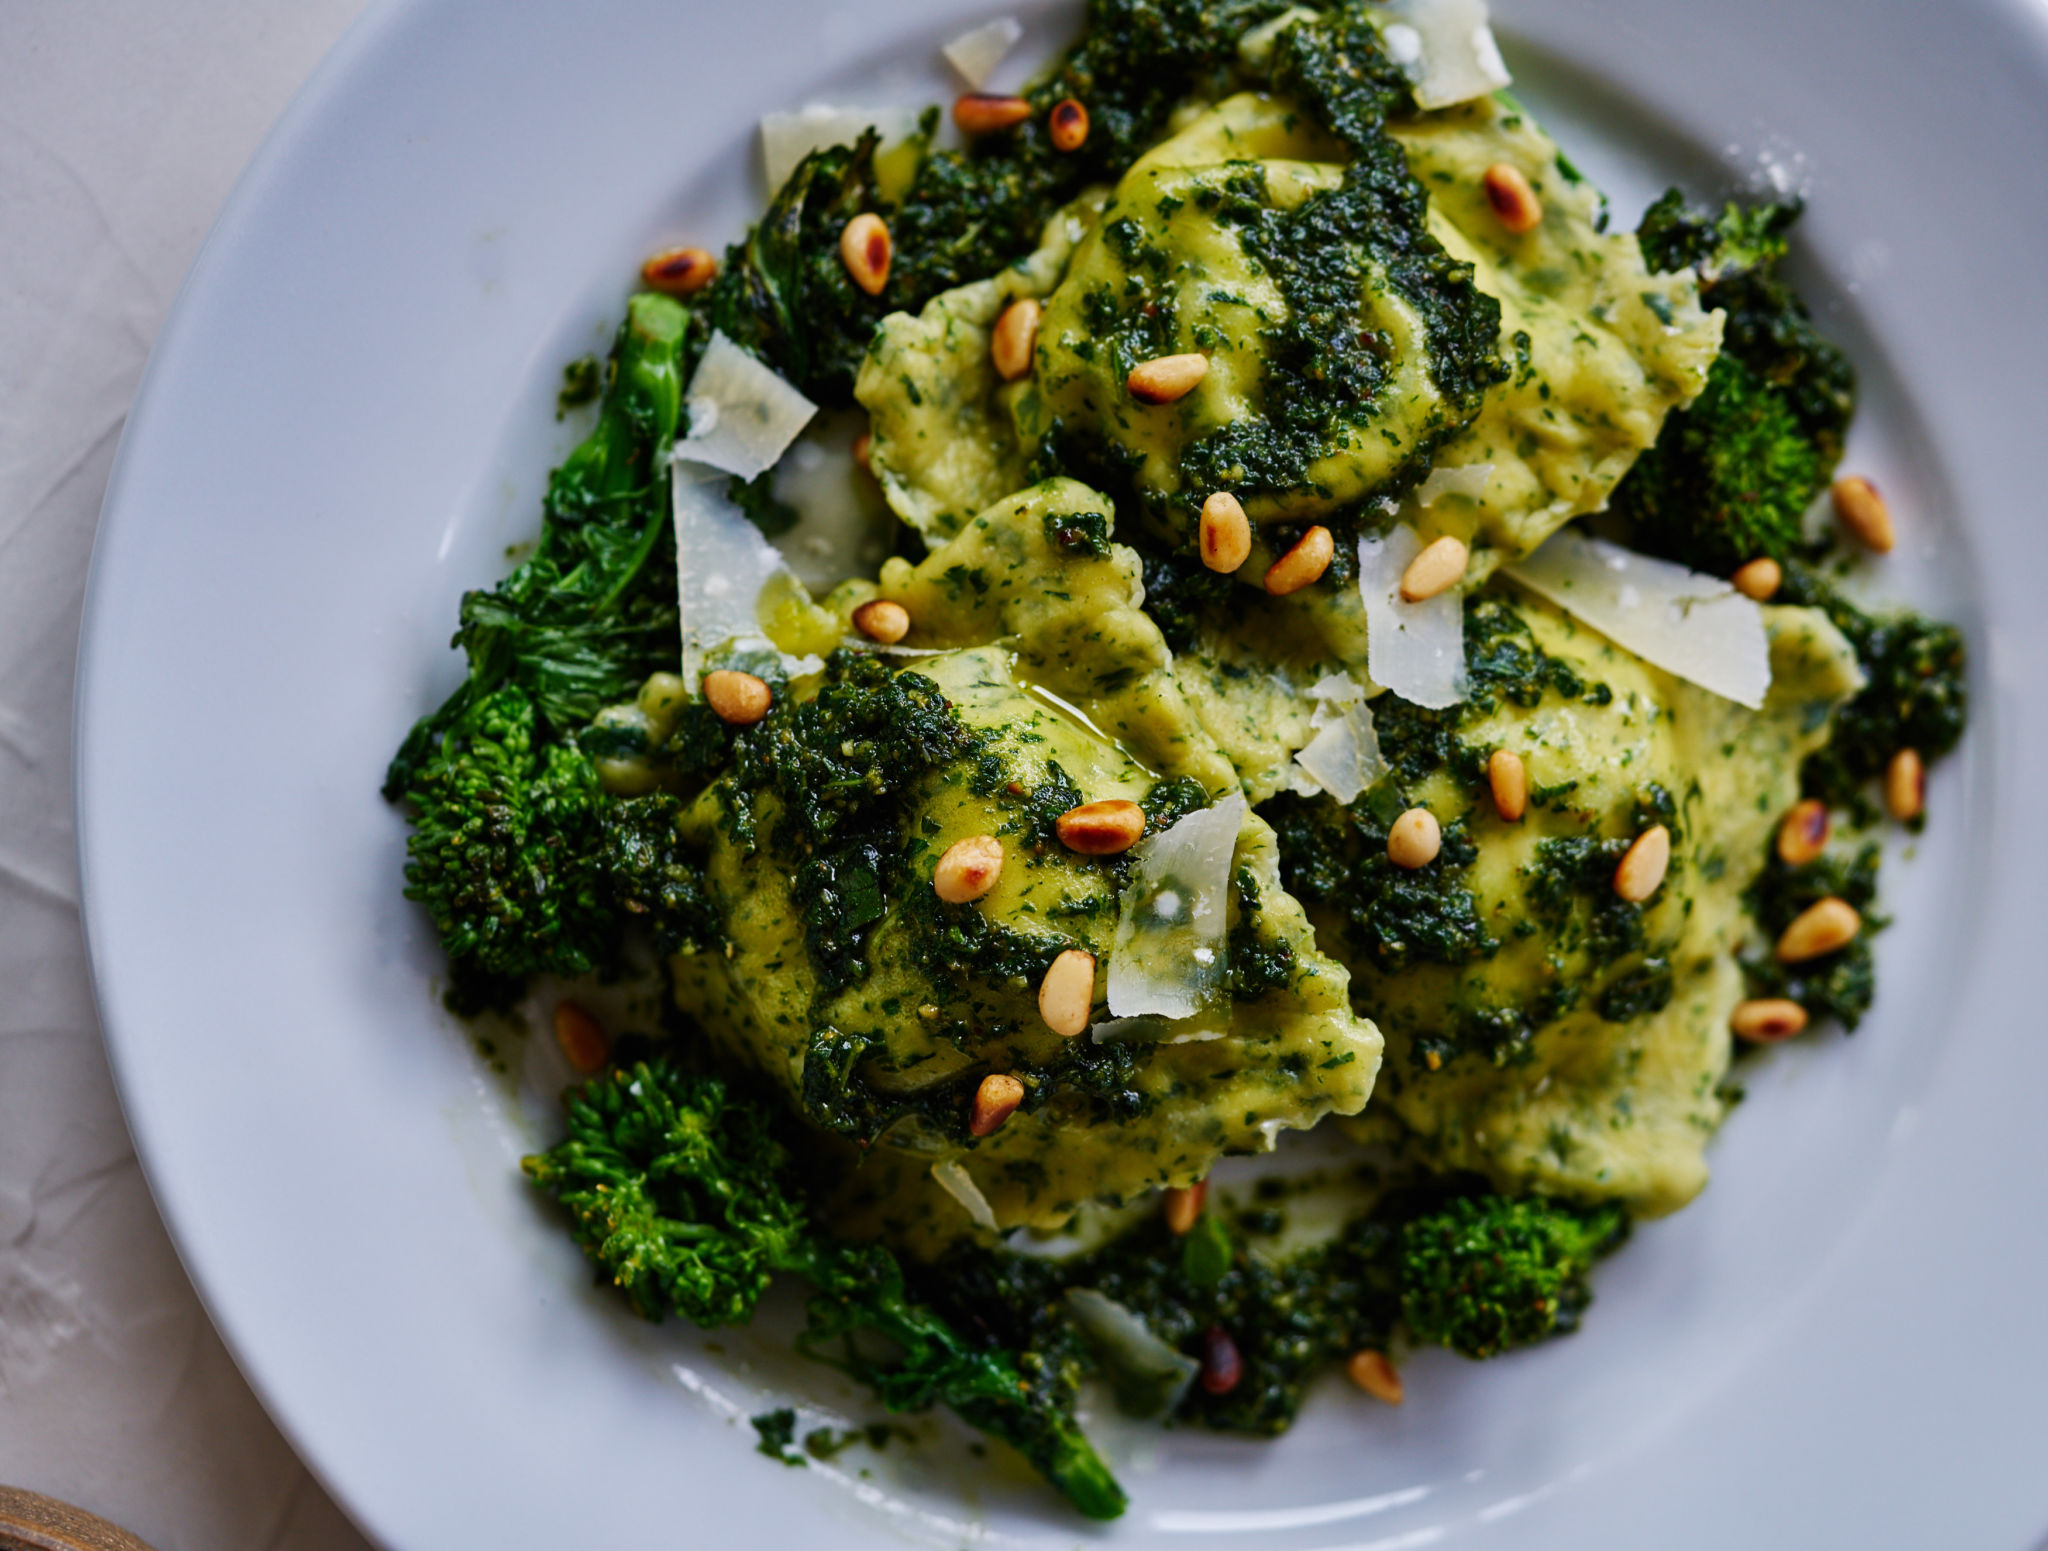 Broccoli Rabe Ravioli with Broccoli Rabe Pesto